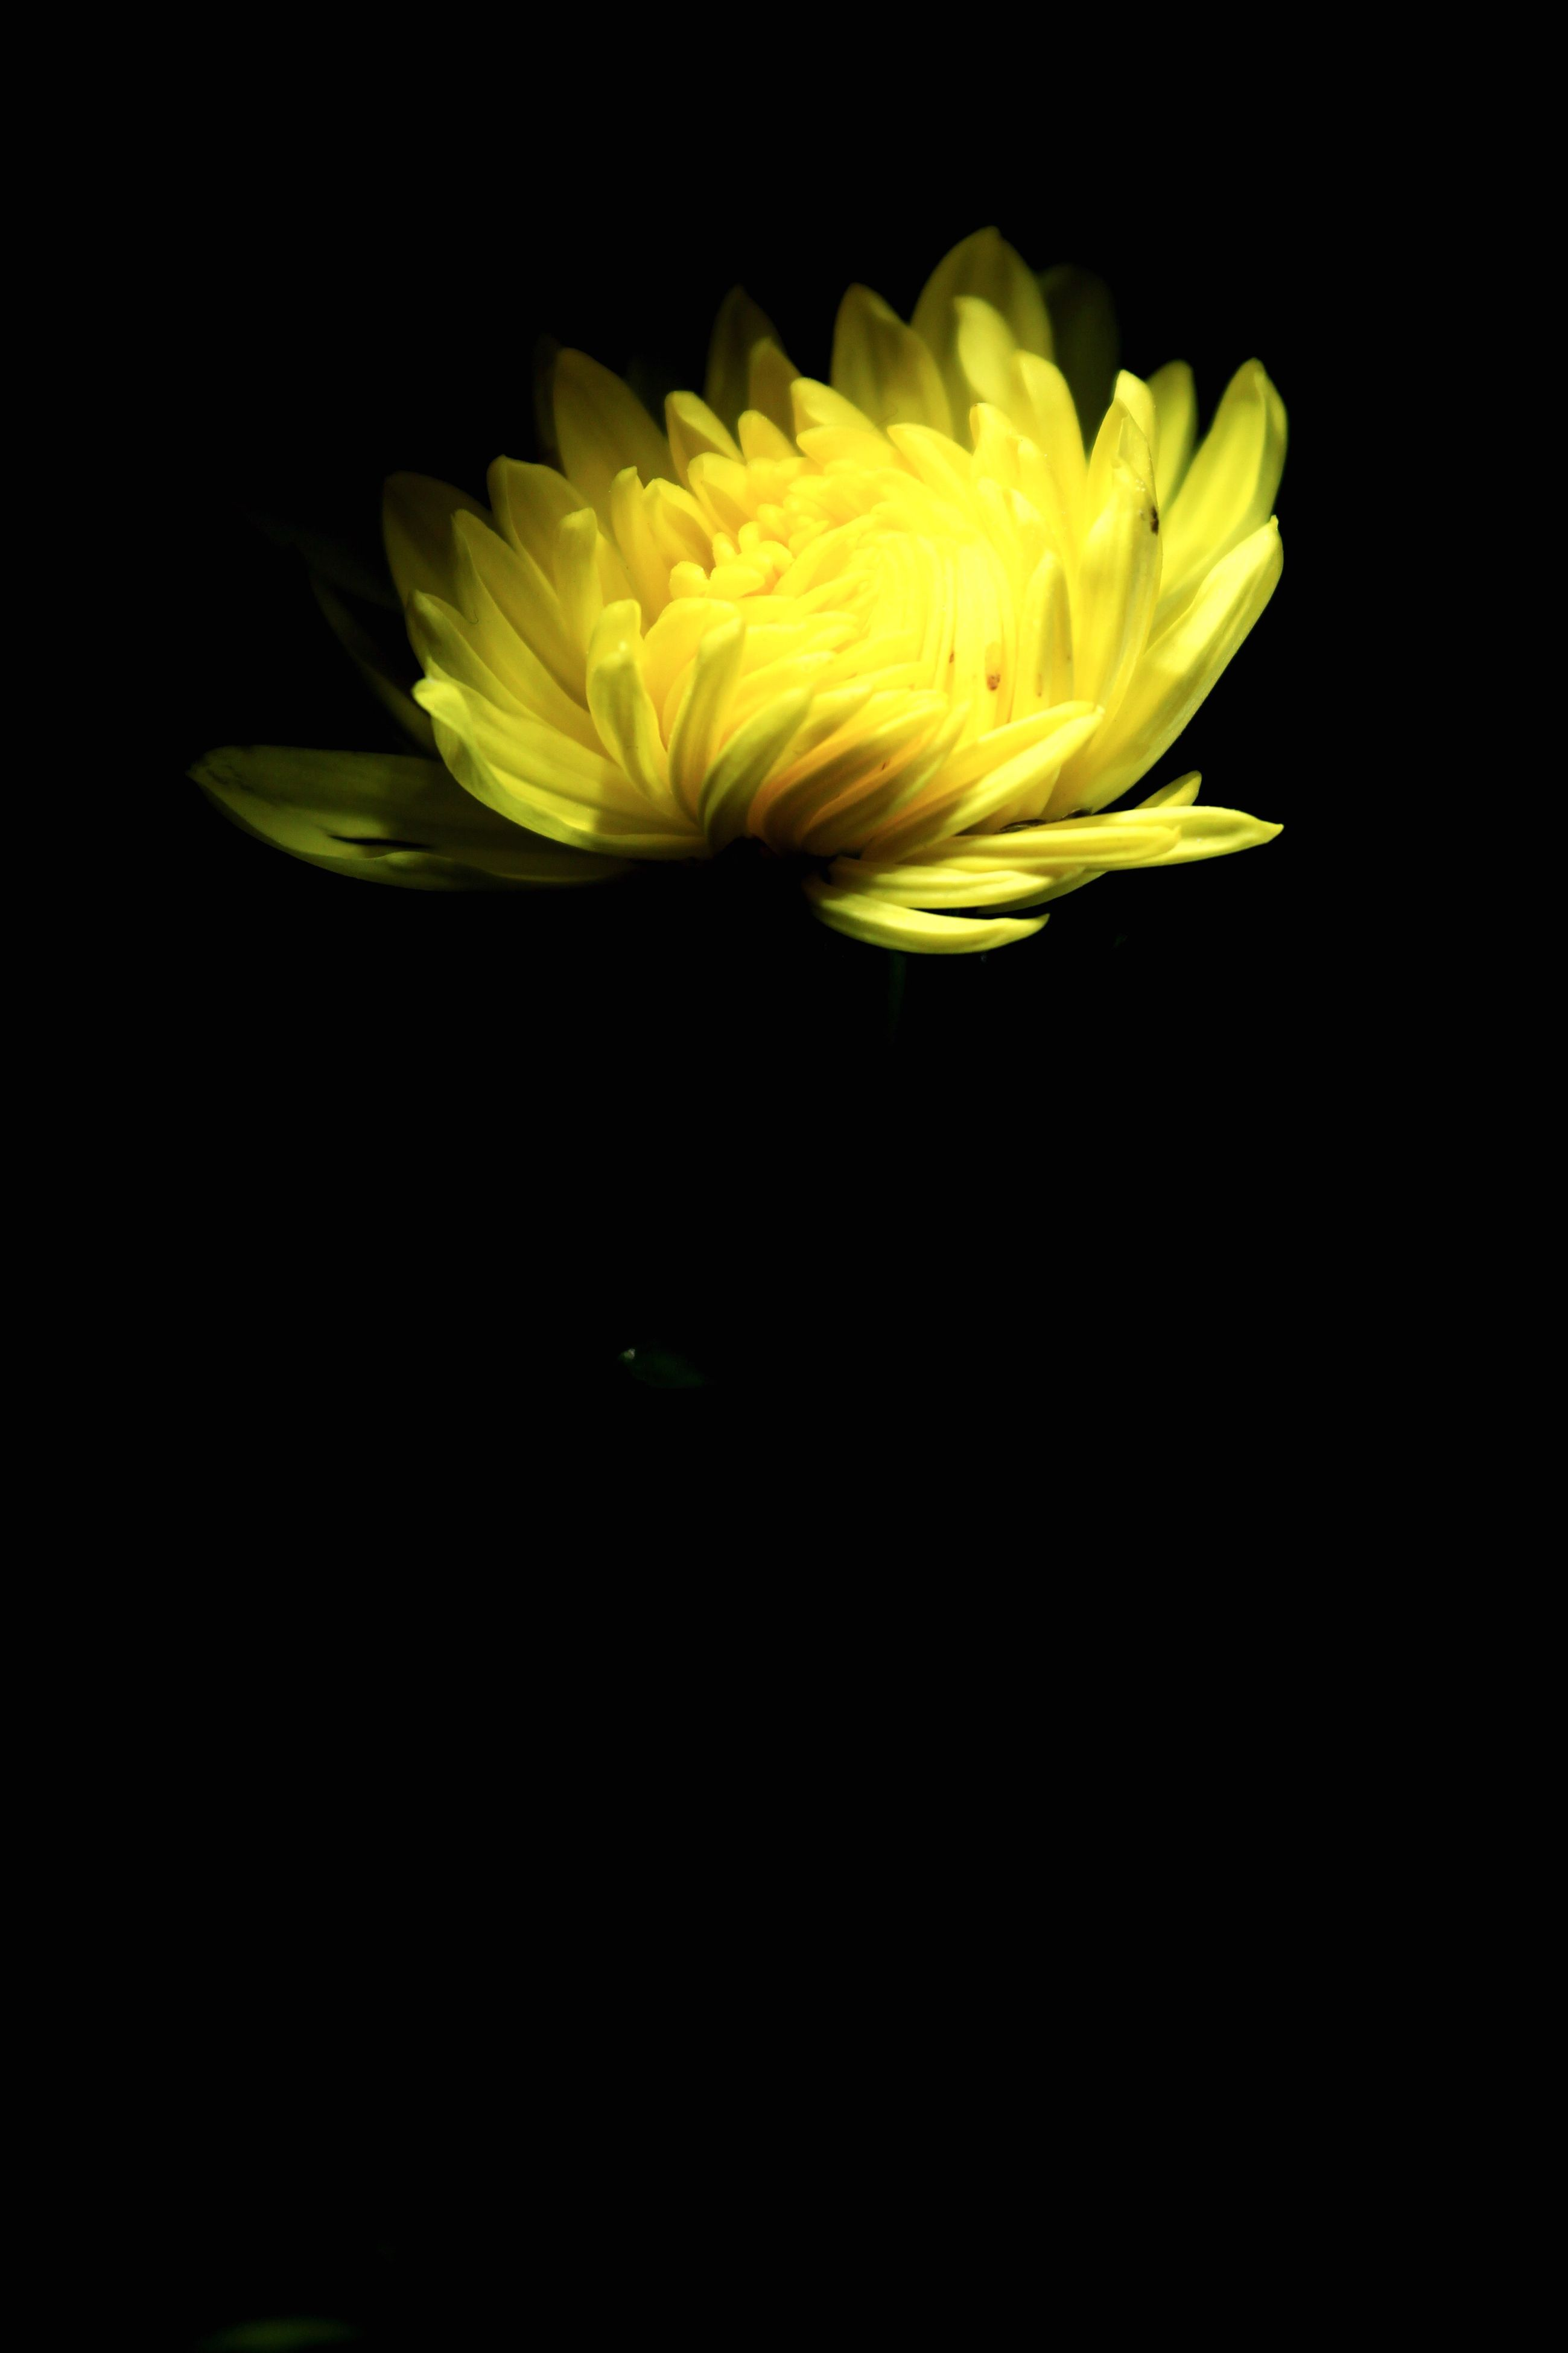 flower, black background, studio shot, petal, yellow, flower head, freshness, fragility, beauty in nature, nature, close-up, growth, single flower, copy space, plant, blooming, no people, night, stem, cut out